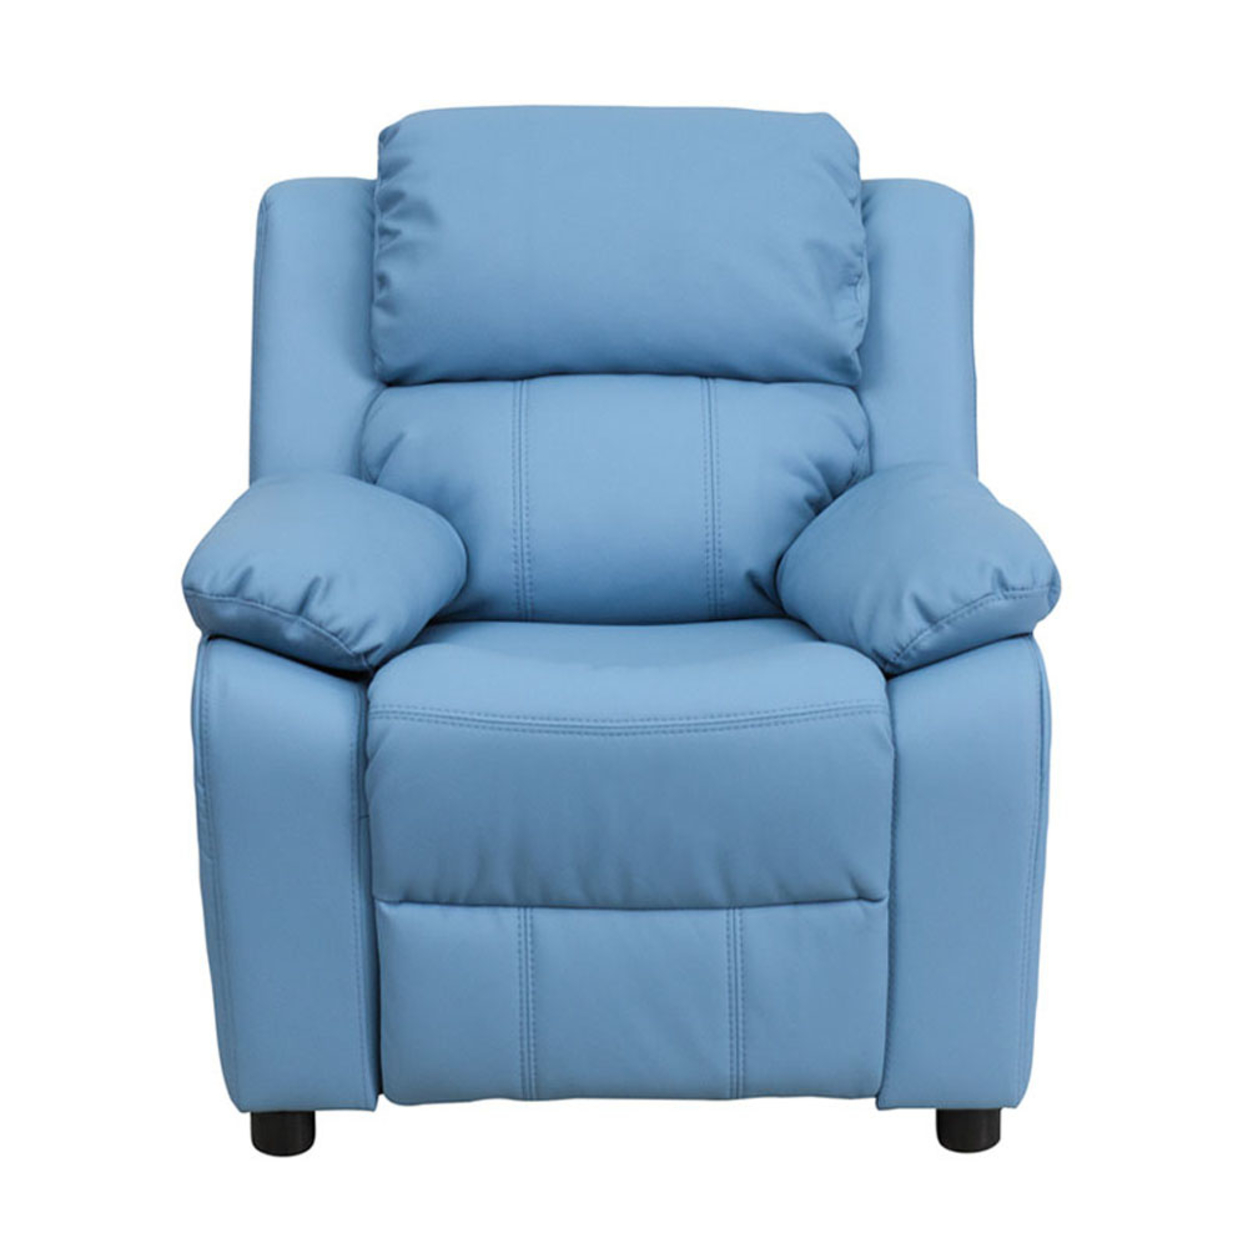 Flash Furniture Deluxe Heavily Padded Contemporary Light Blue Vinyl Kids Recliner with Storage Arms [863-Bt-7985-Kid-Ltblue-Gg] 59e460122a00e4389e724db4